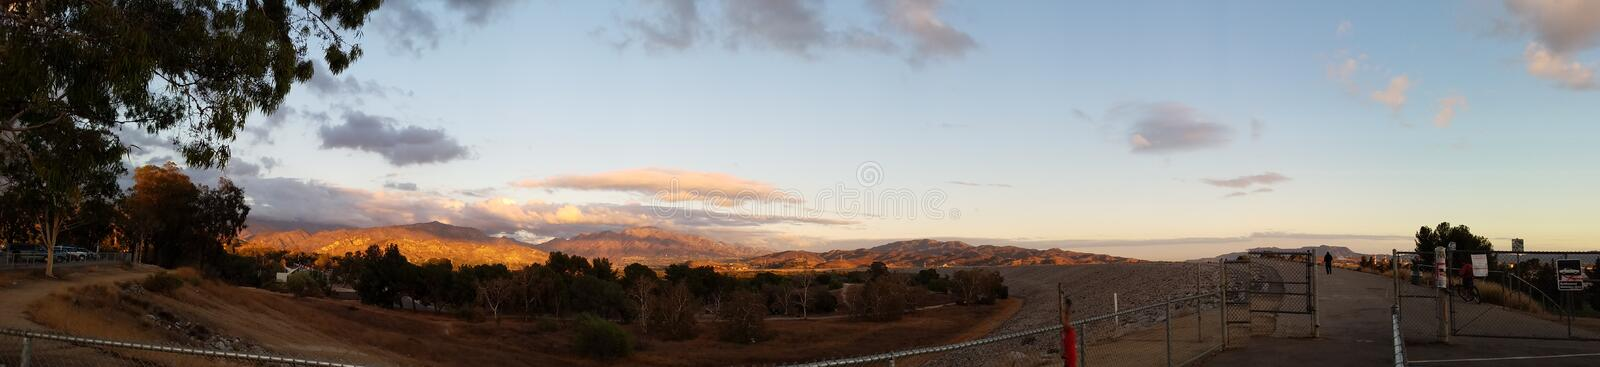 Mountain Landscape At Sunset royalty free stock photos